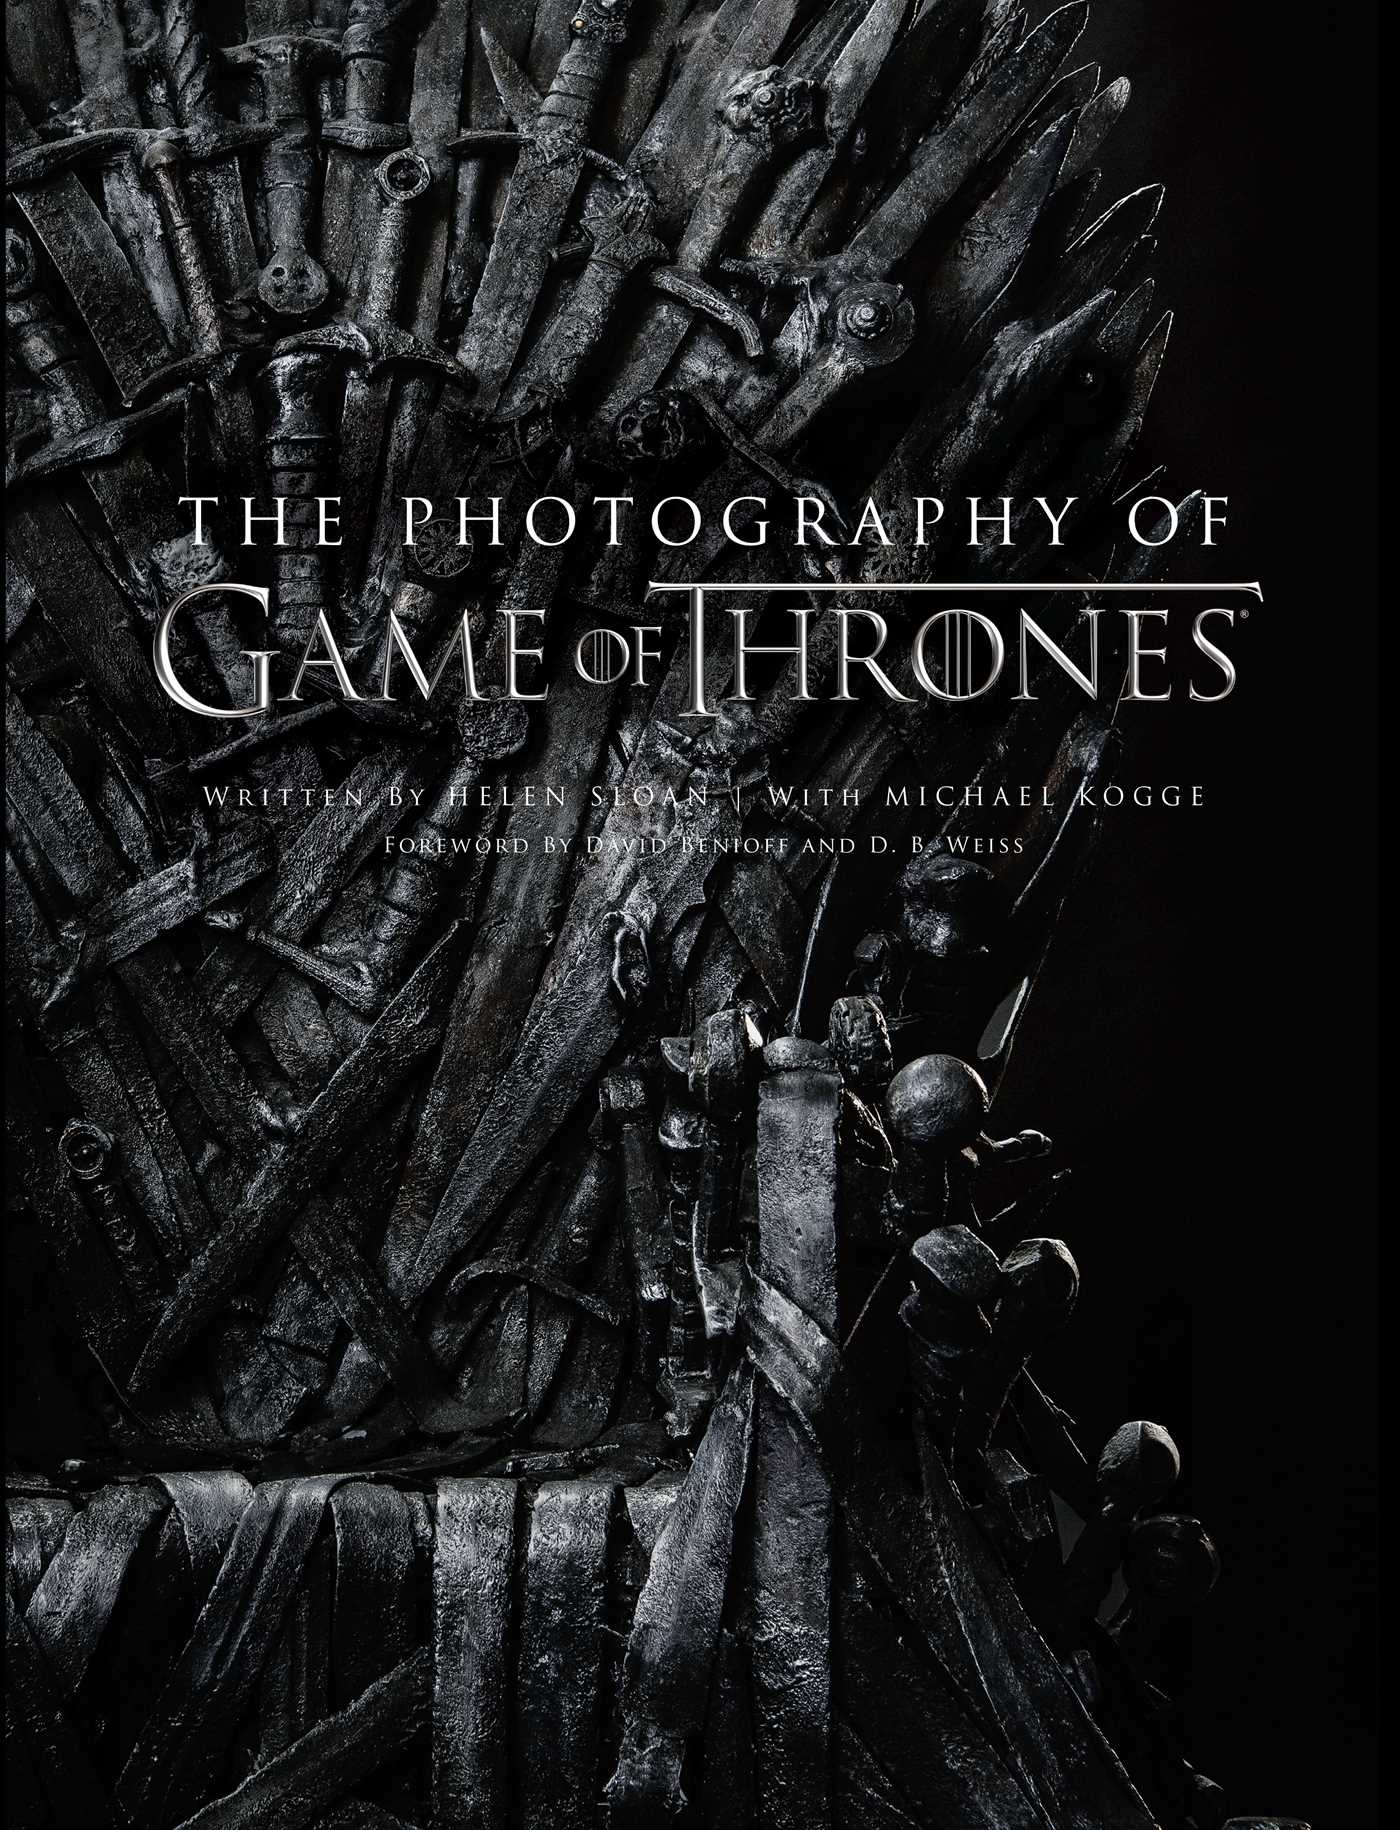 The Photography of Game of Thrones